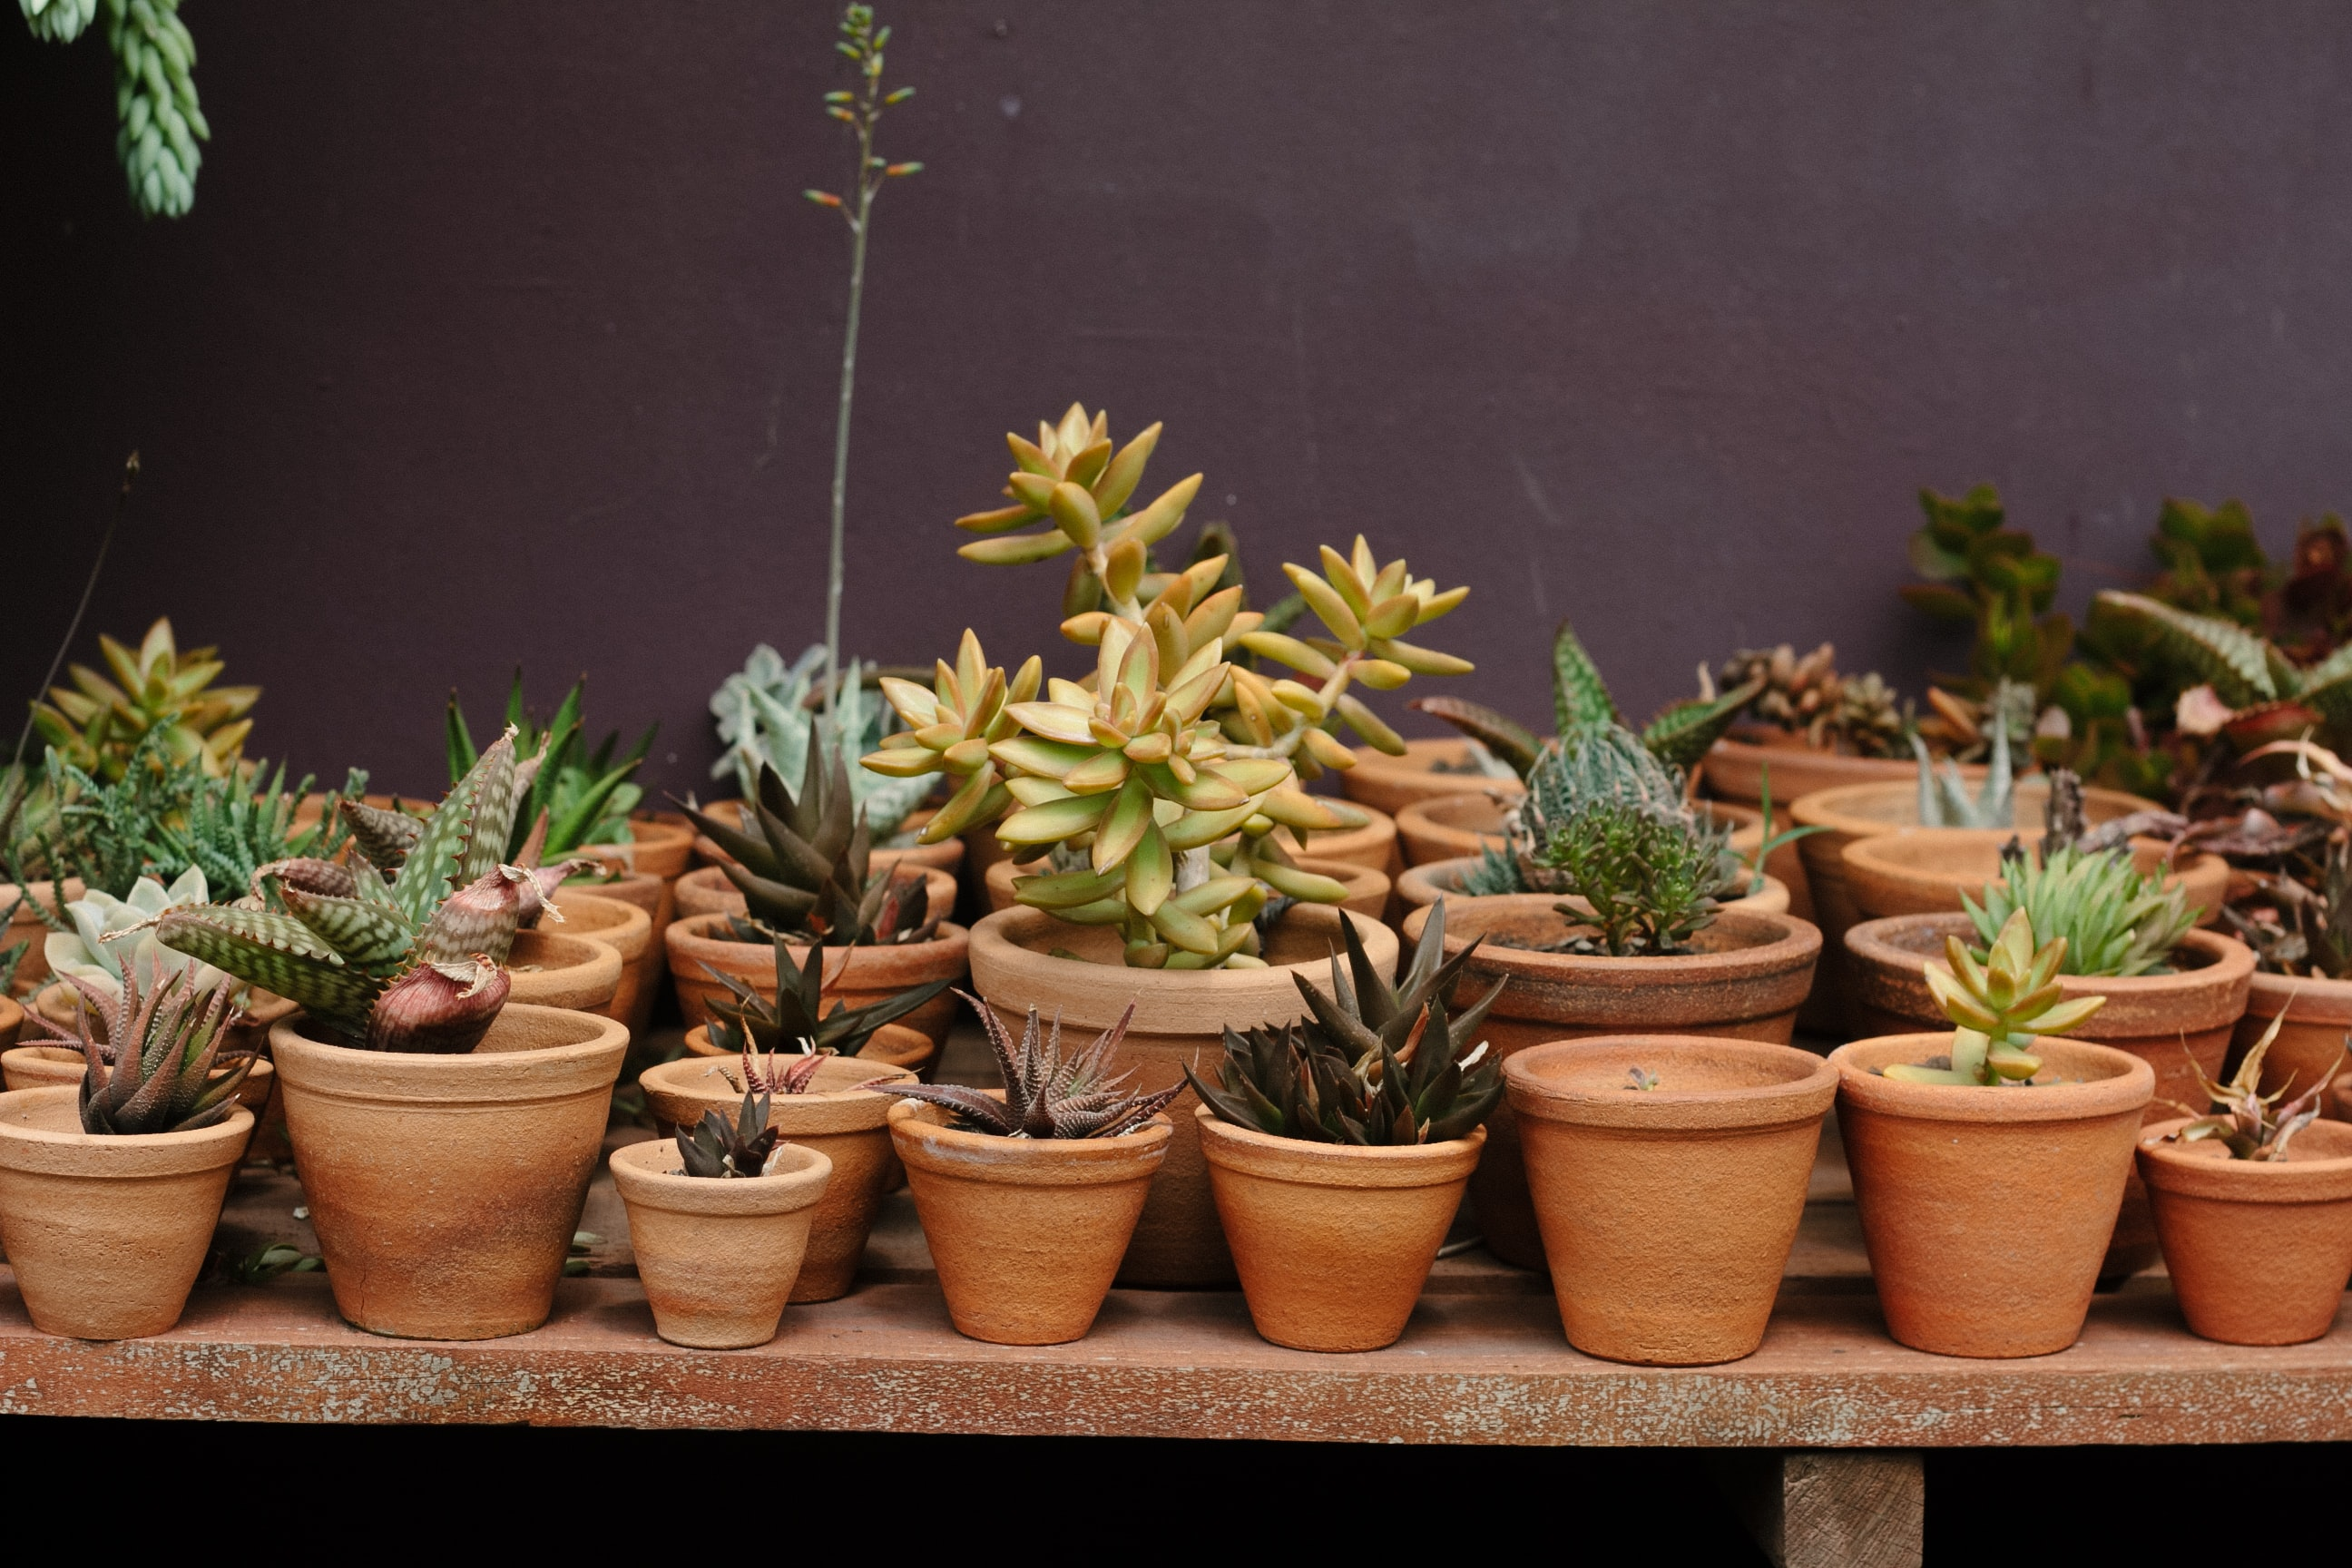 Rows of potted succulents for sale at a greenhouse